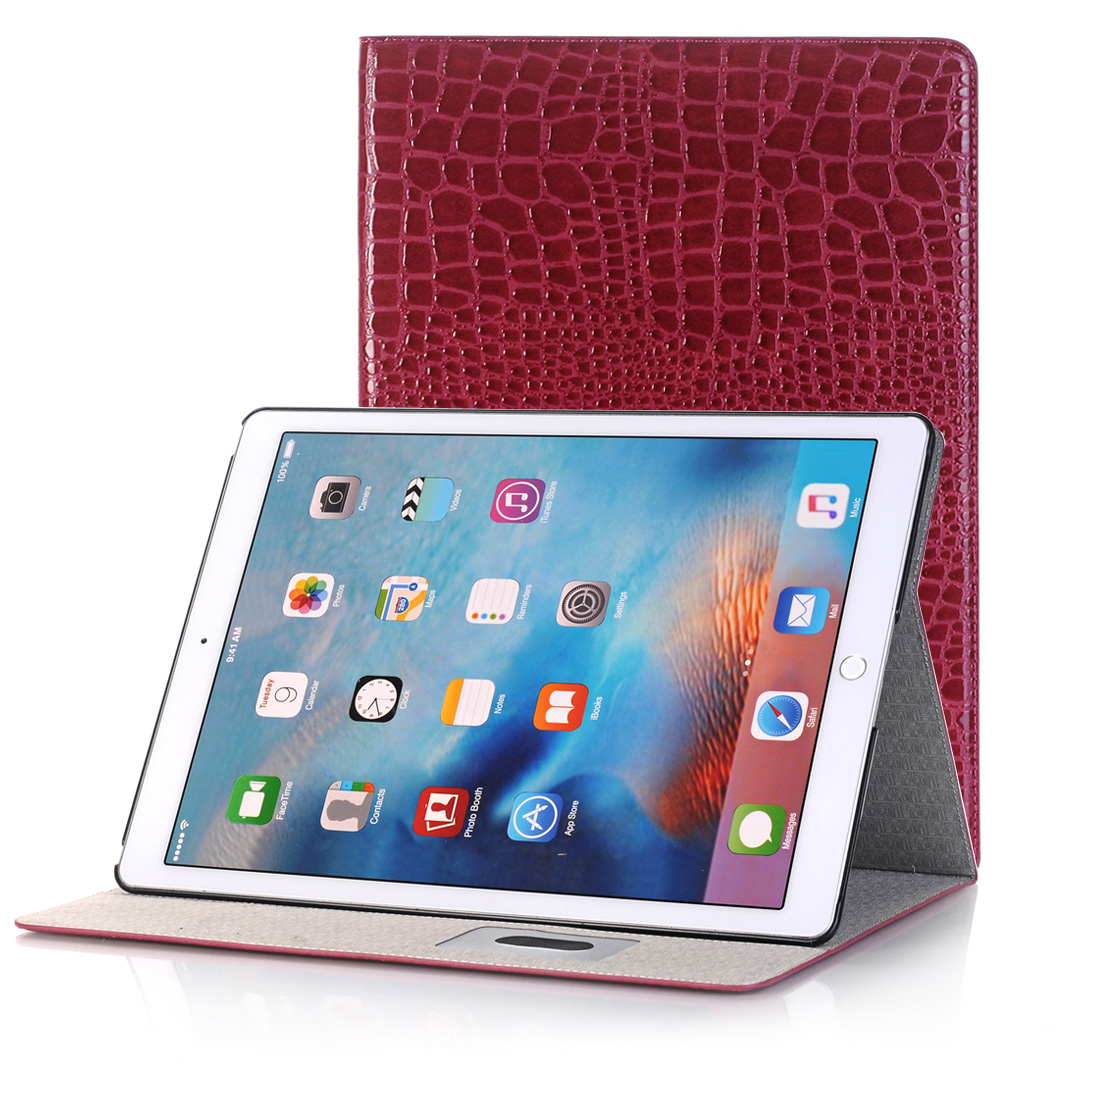 Crocodile Texture Leather Case, For iPad Air 2 Case With Slim Profile (Red)